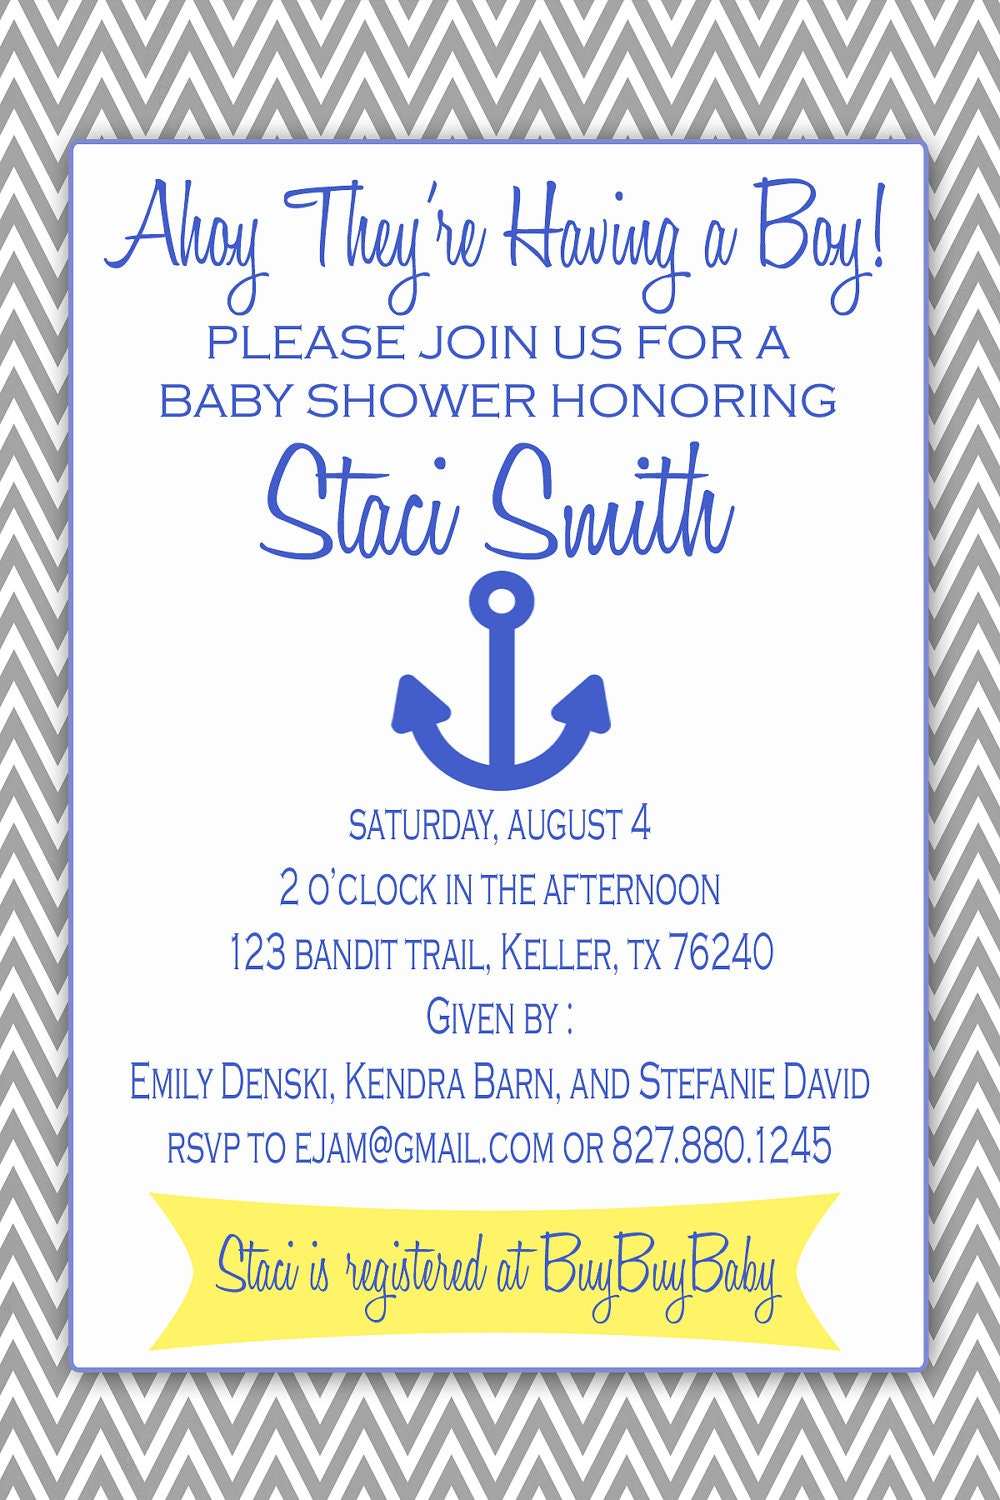 nautical baby shower invitation jpg only